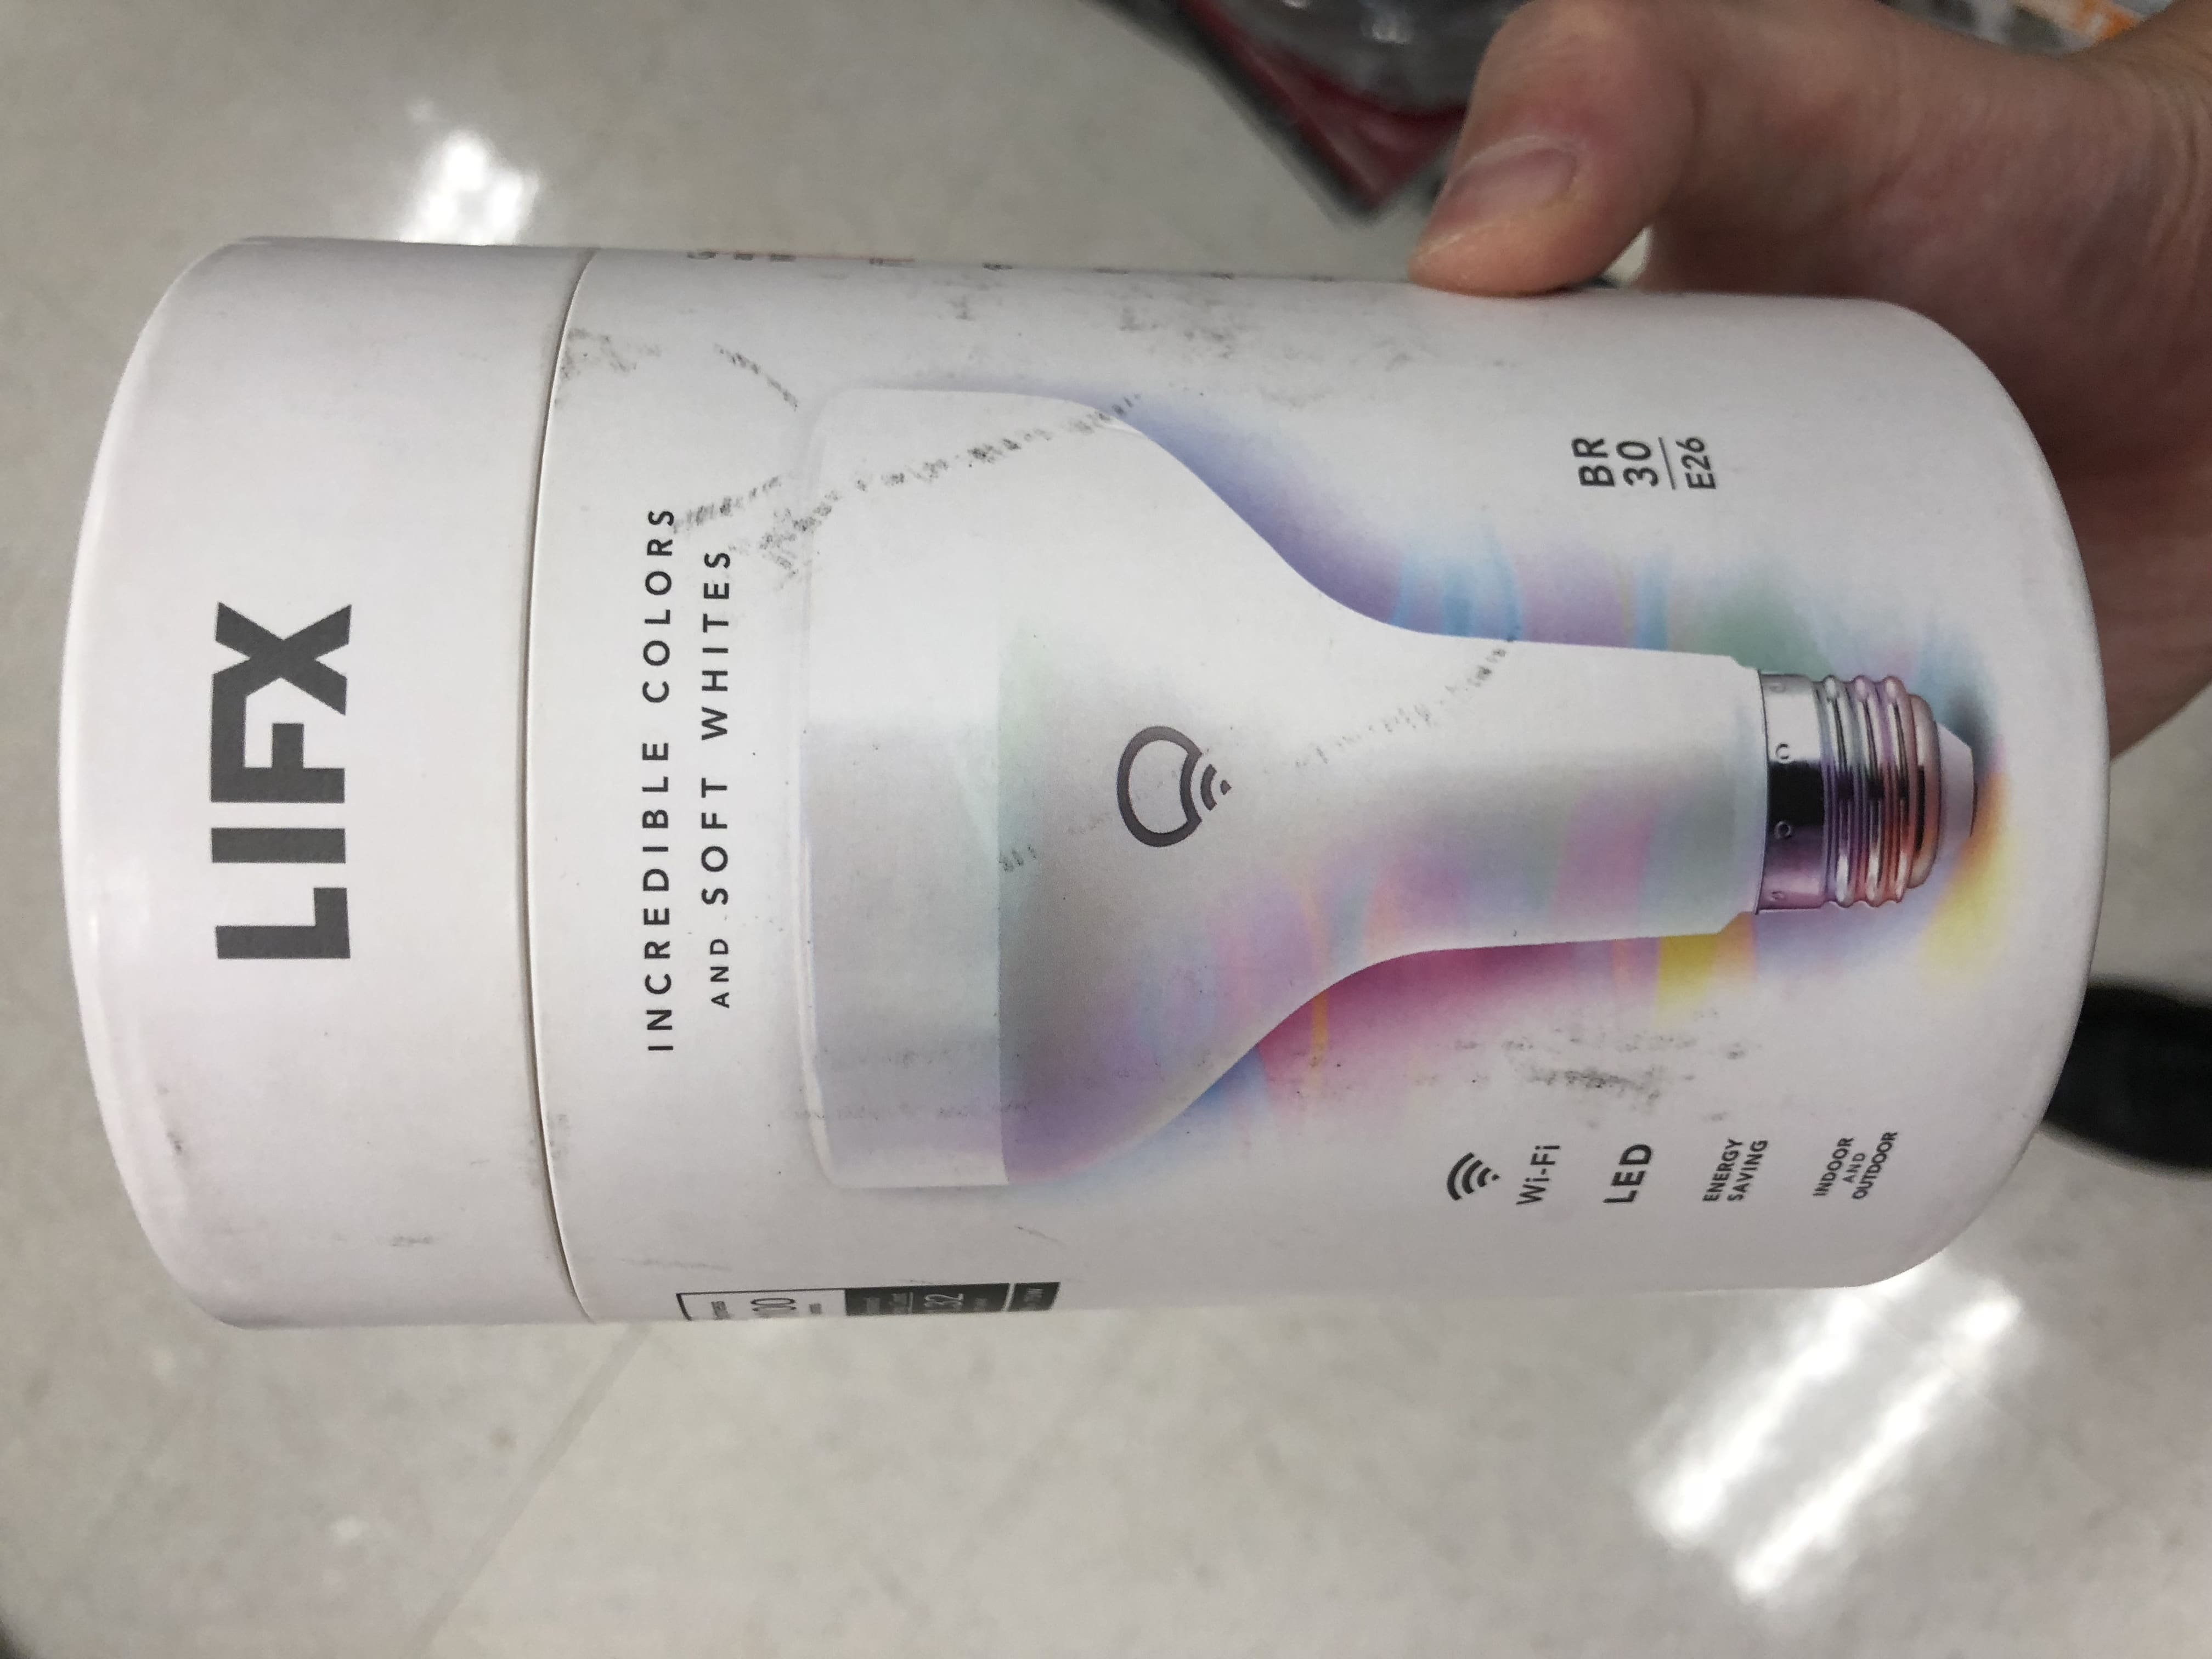 LIFX BR30 for $41.96 on CLEARANCE @ TARGET (YMMV)